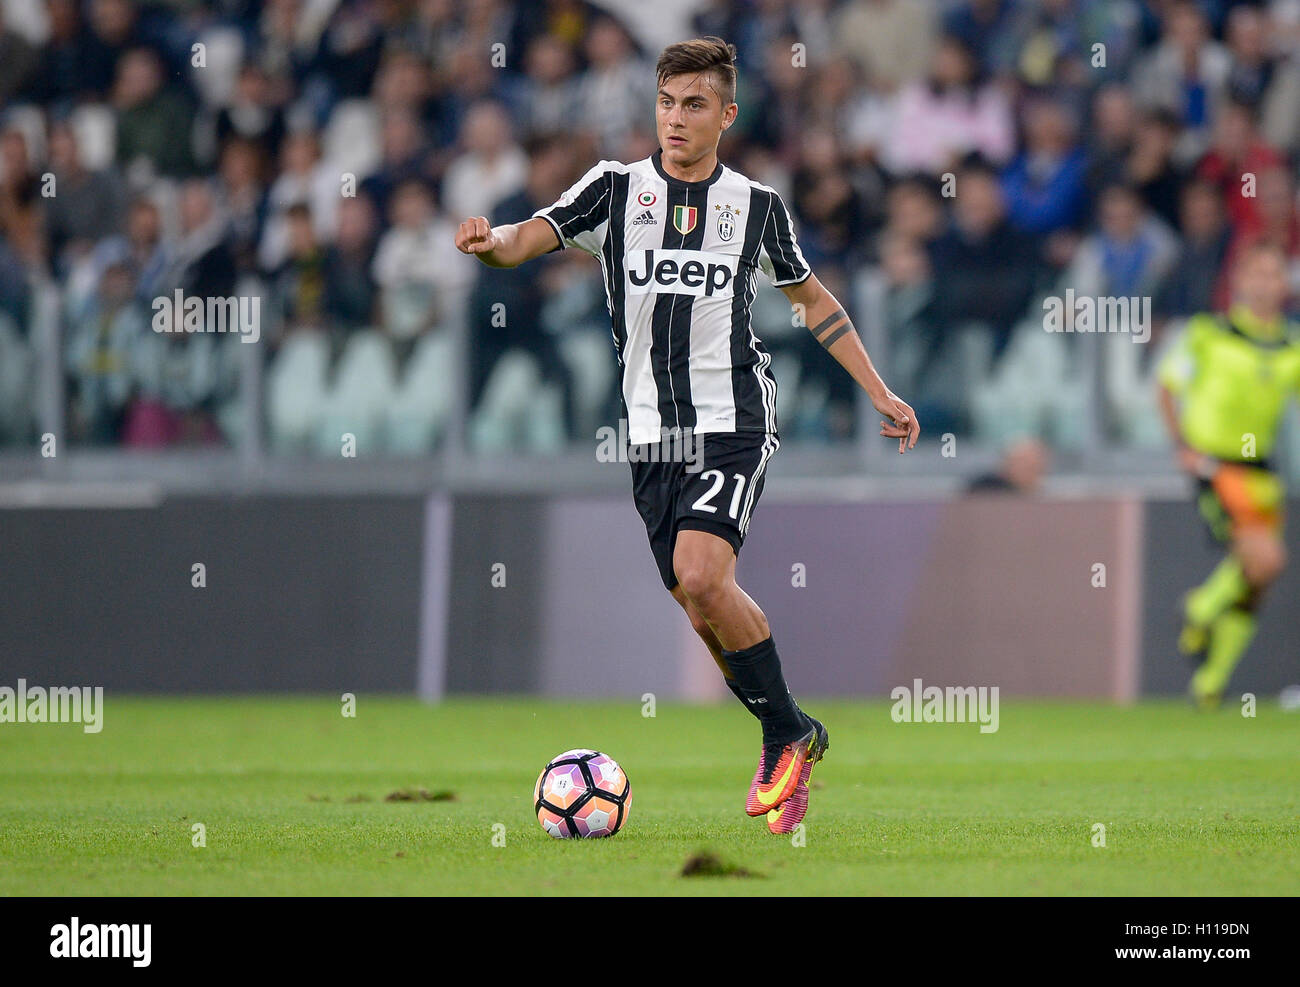 cec110188eb Turin, Italy. 21st Sep, 2016. Paulo Dybala of Juventus FC in action